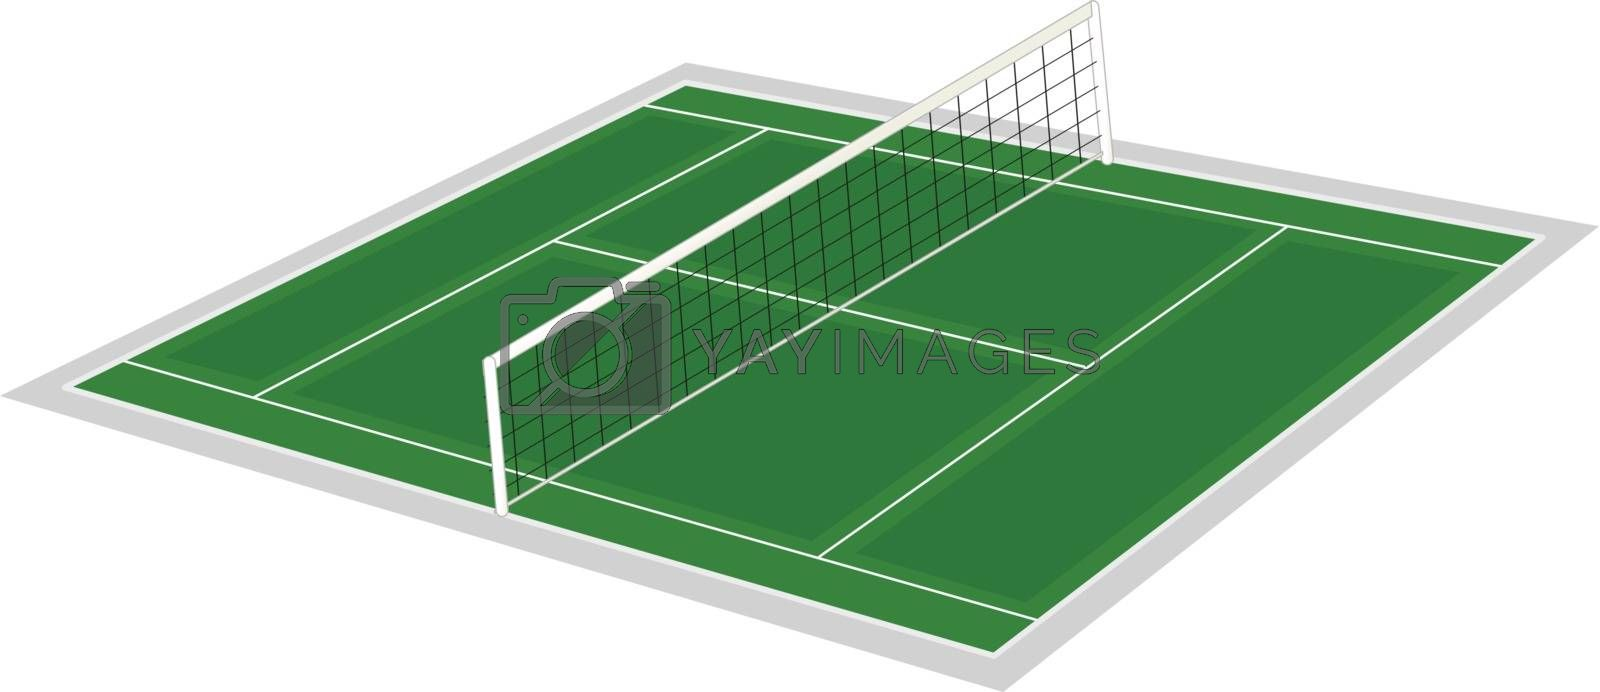 volley ball ground Royalty Free Stock Image | Stock Photos, Royalty Free Images, Vectors, Footage | Yayimages